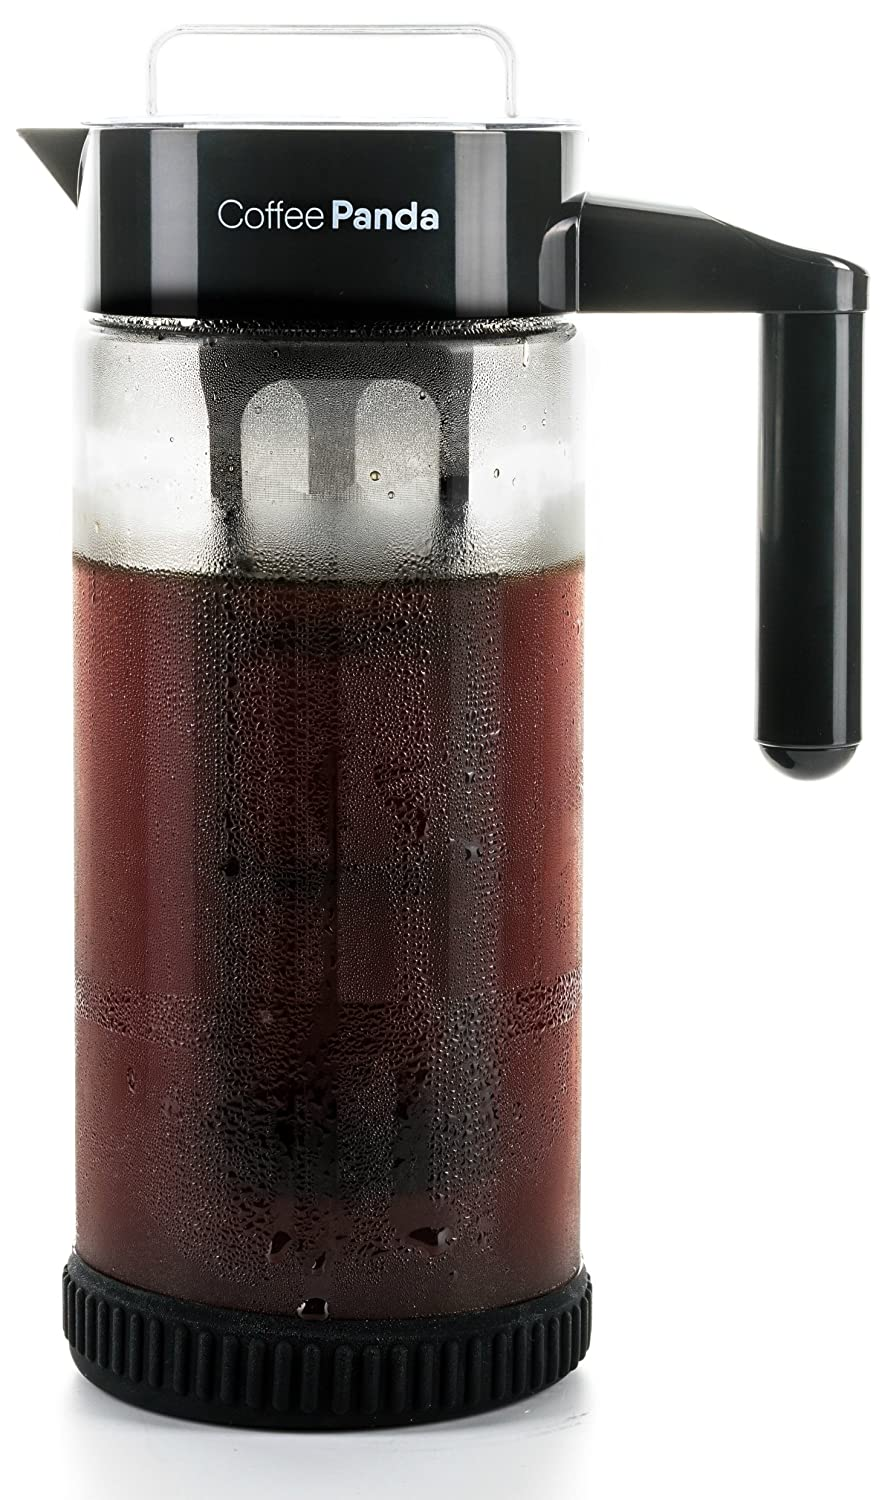 Great For Flavorful Iced Coffee That Stays Fresh Longer Easy Cleaning Borosilicate Glass Capacity 4 Cups Cold Brew Coffee Maker By Spigo 1 Liter Fun Ideas And Recipe Booklet 8x5 Inches Black Coffee